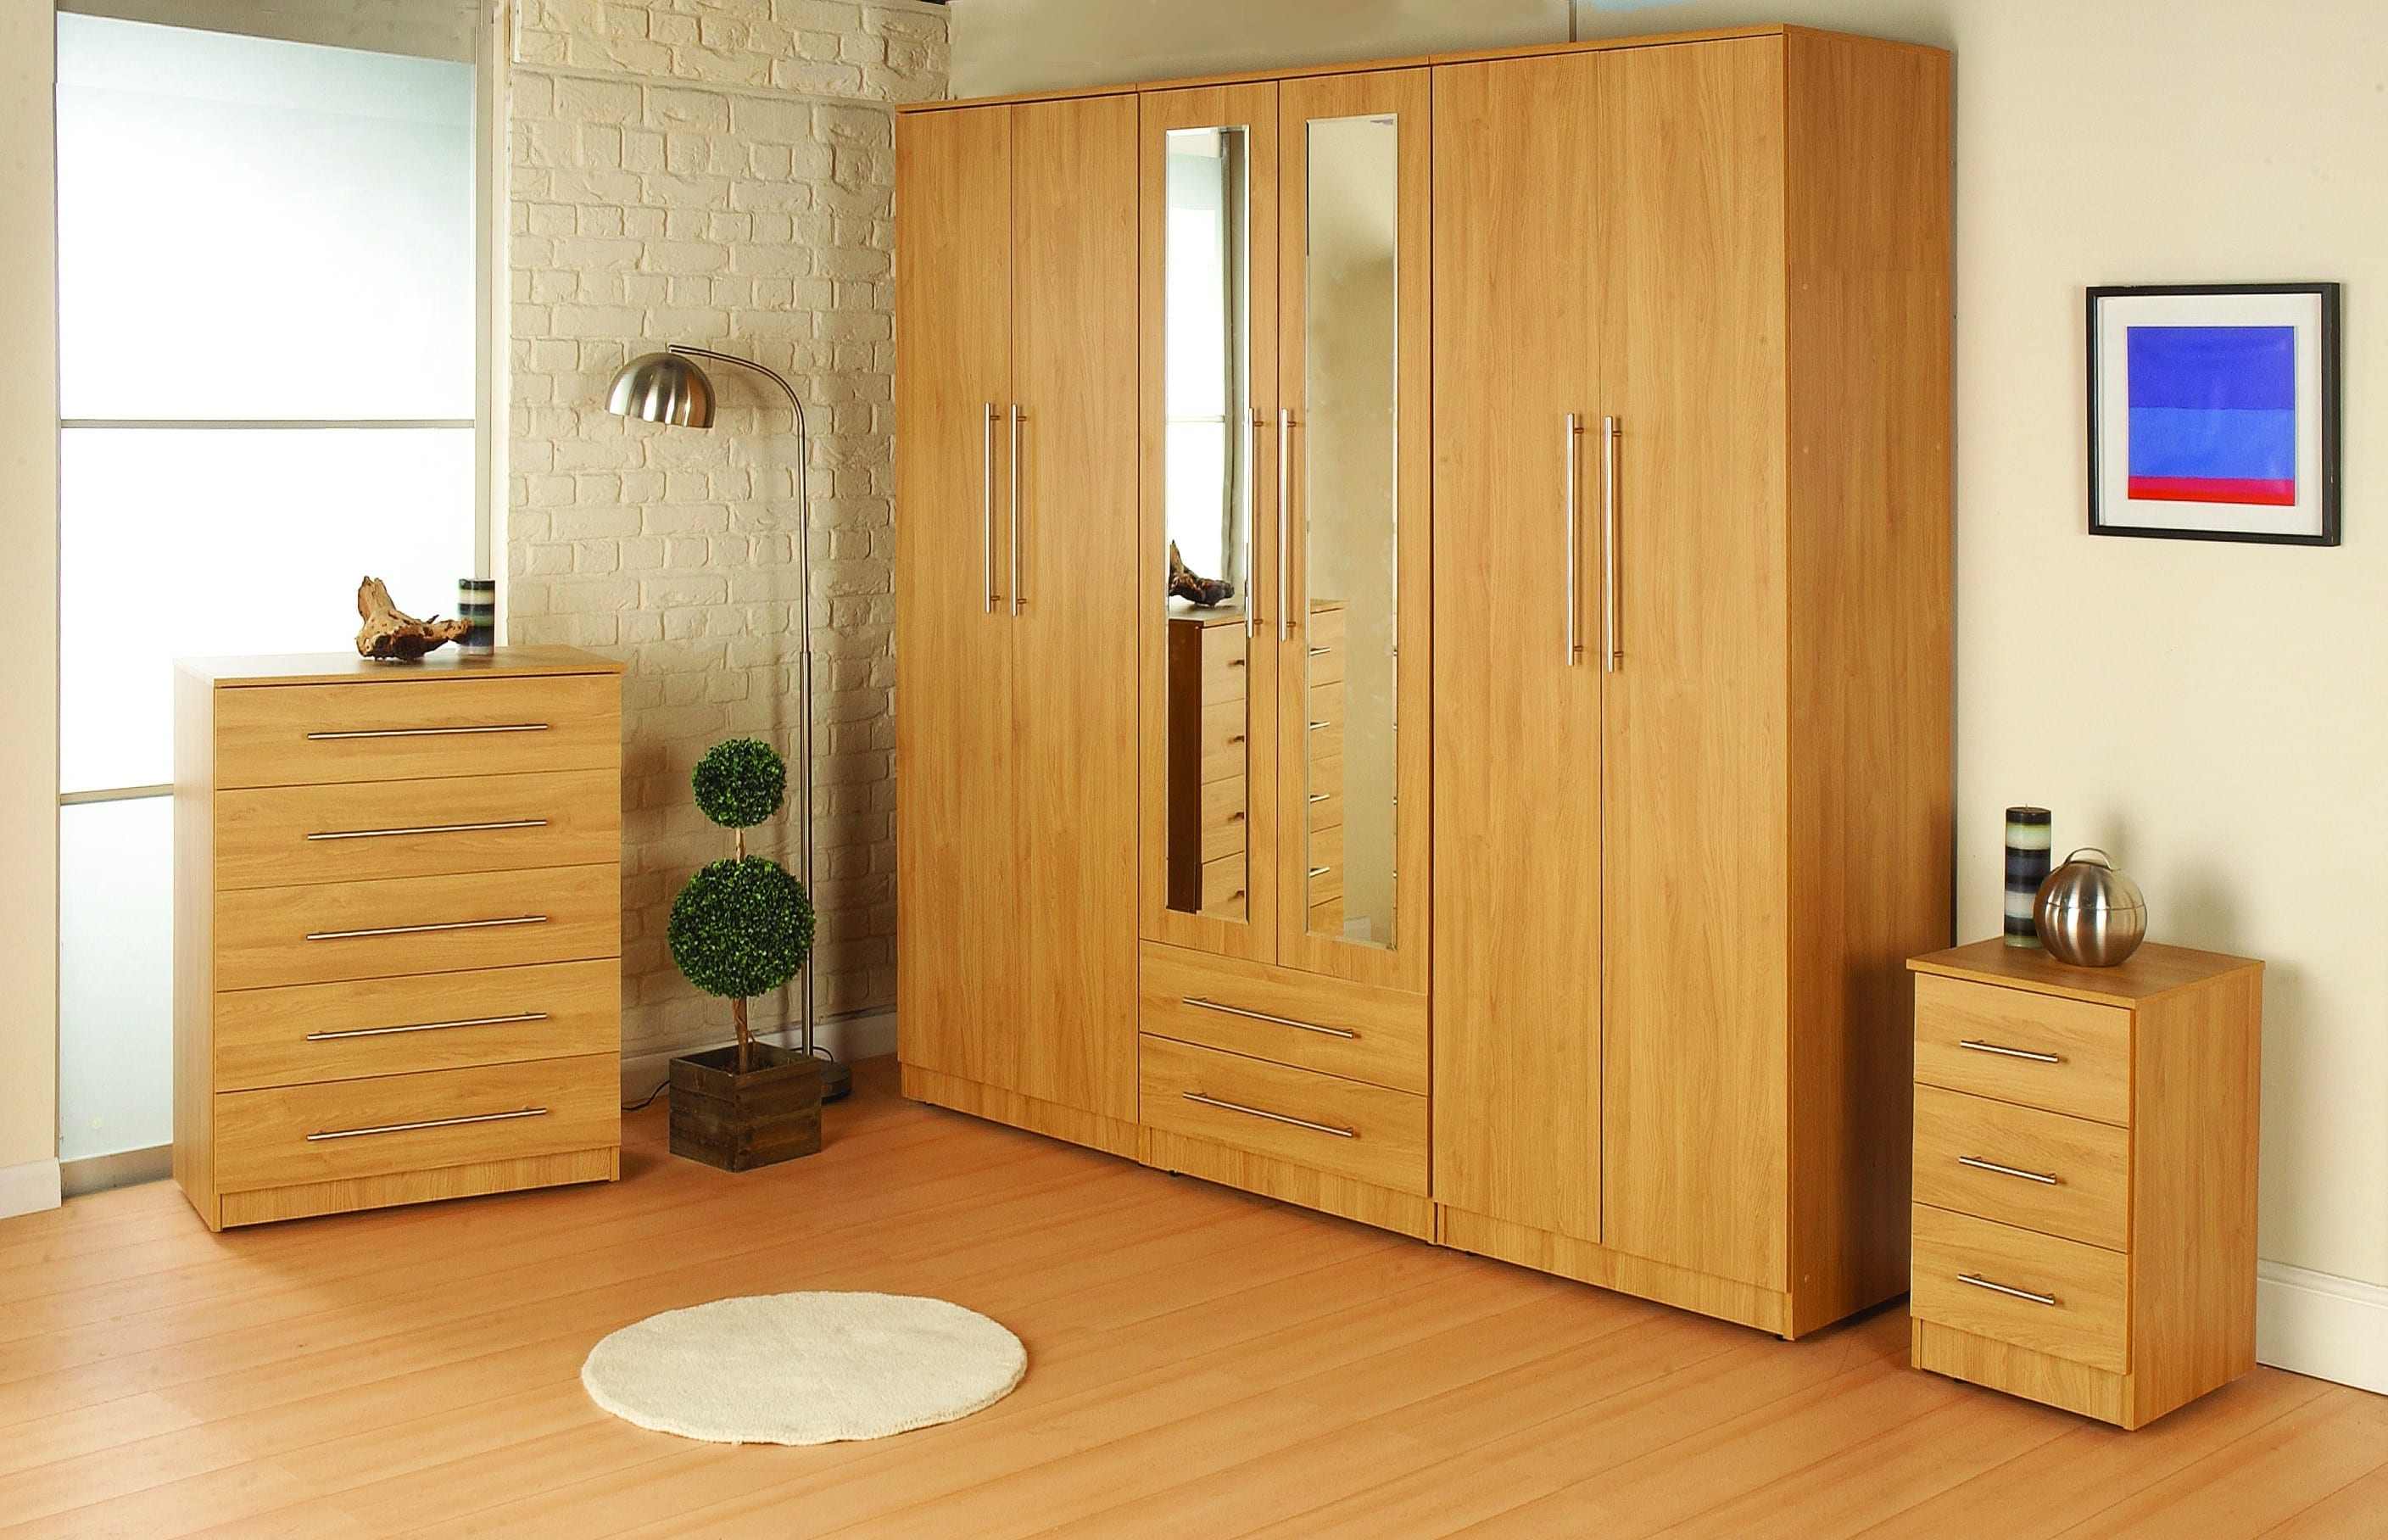 ravenna rimini oak veneer gents robe let us furnish. Black Bedroom Furniture Sets. Home Design Ideas